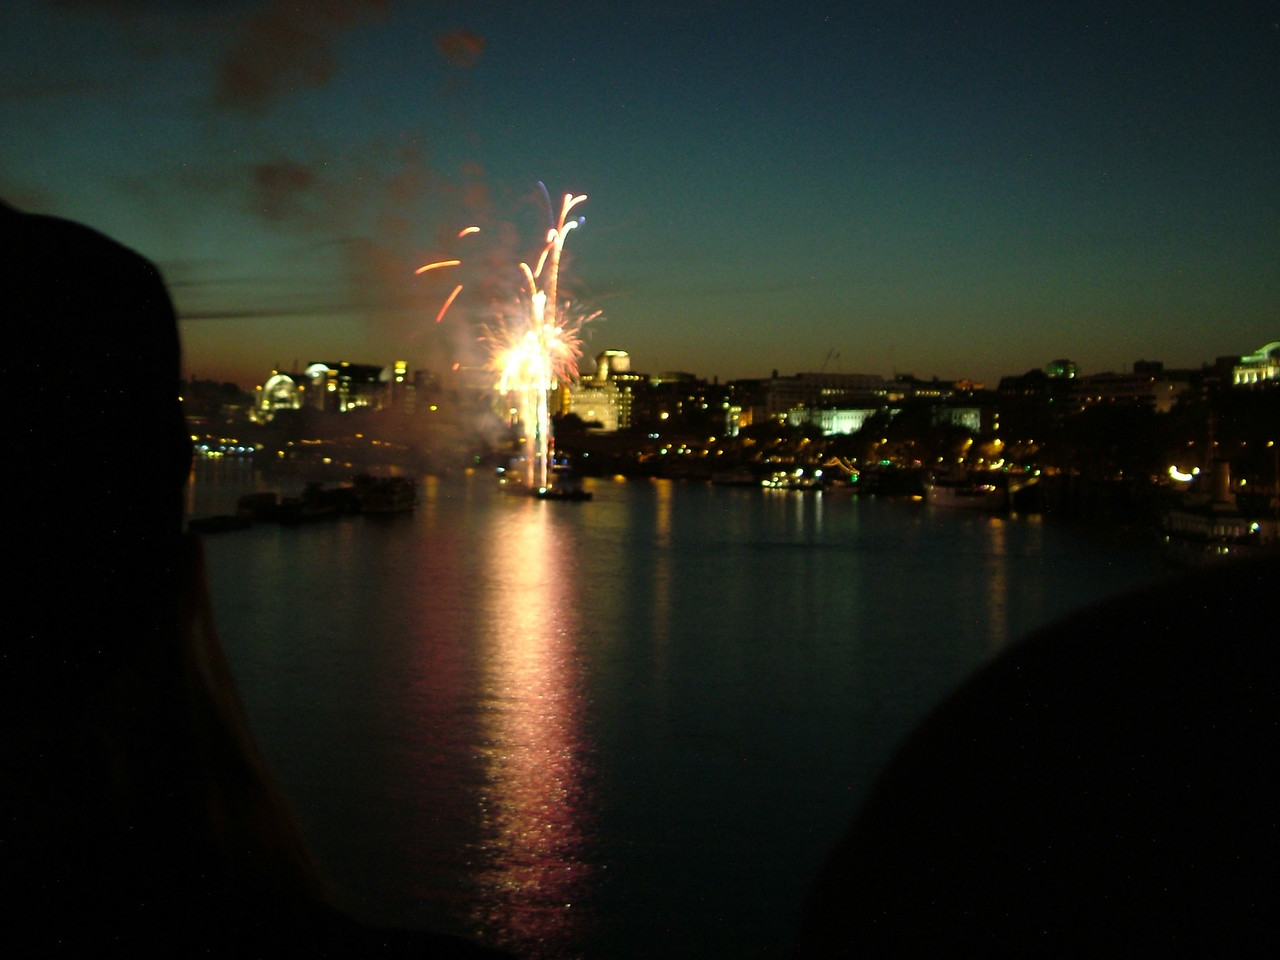 Lord Mayor's Show Fireworks, London